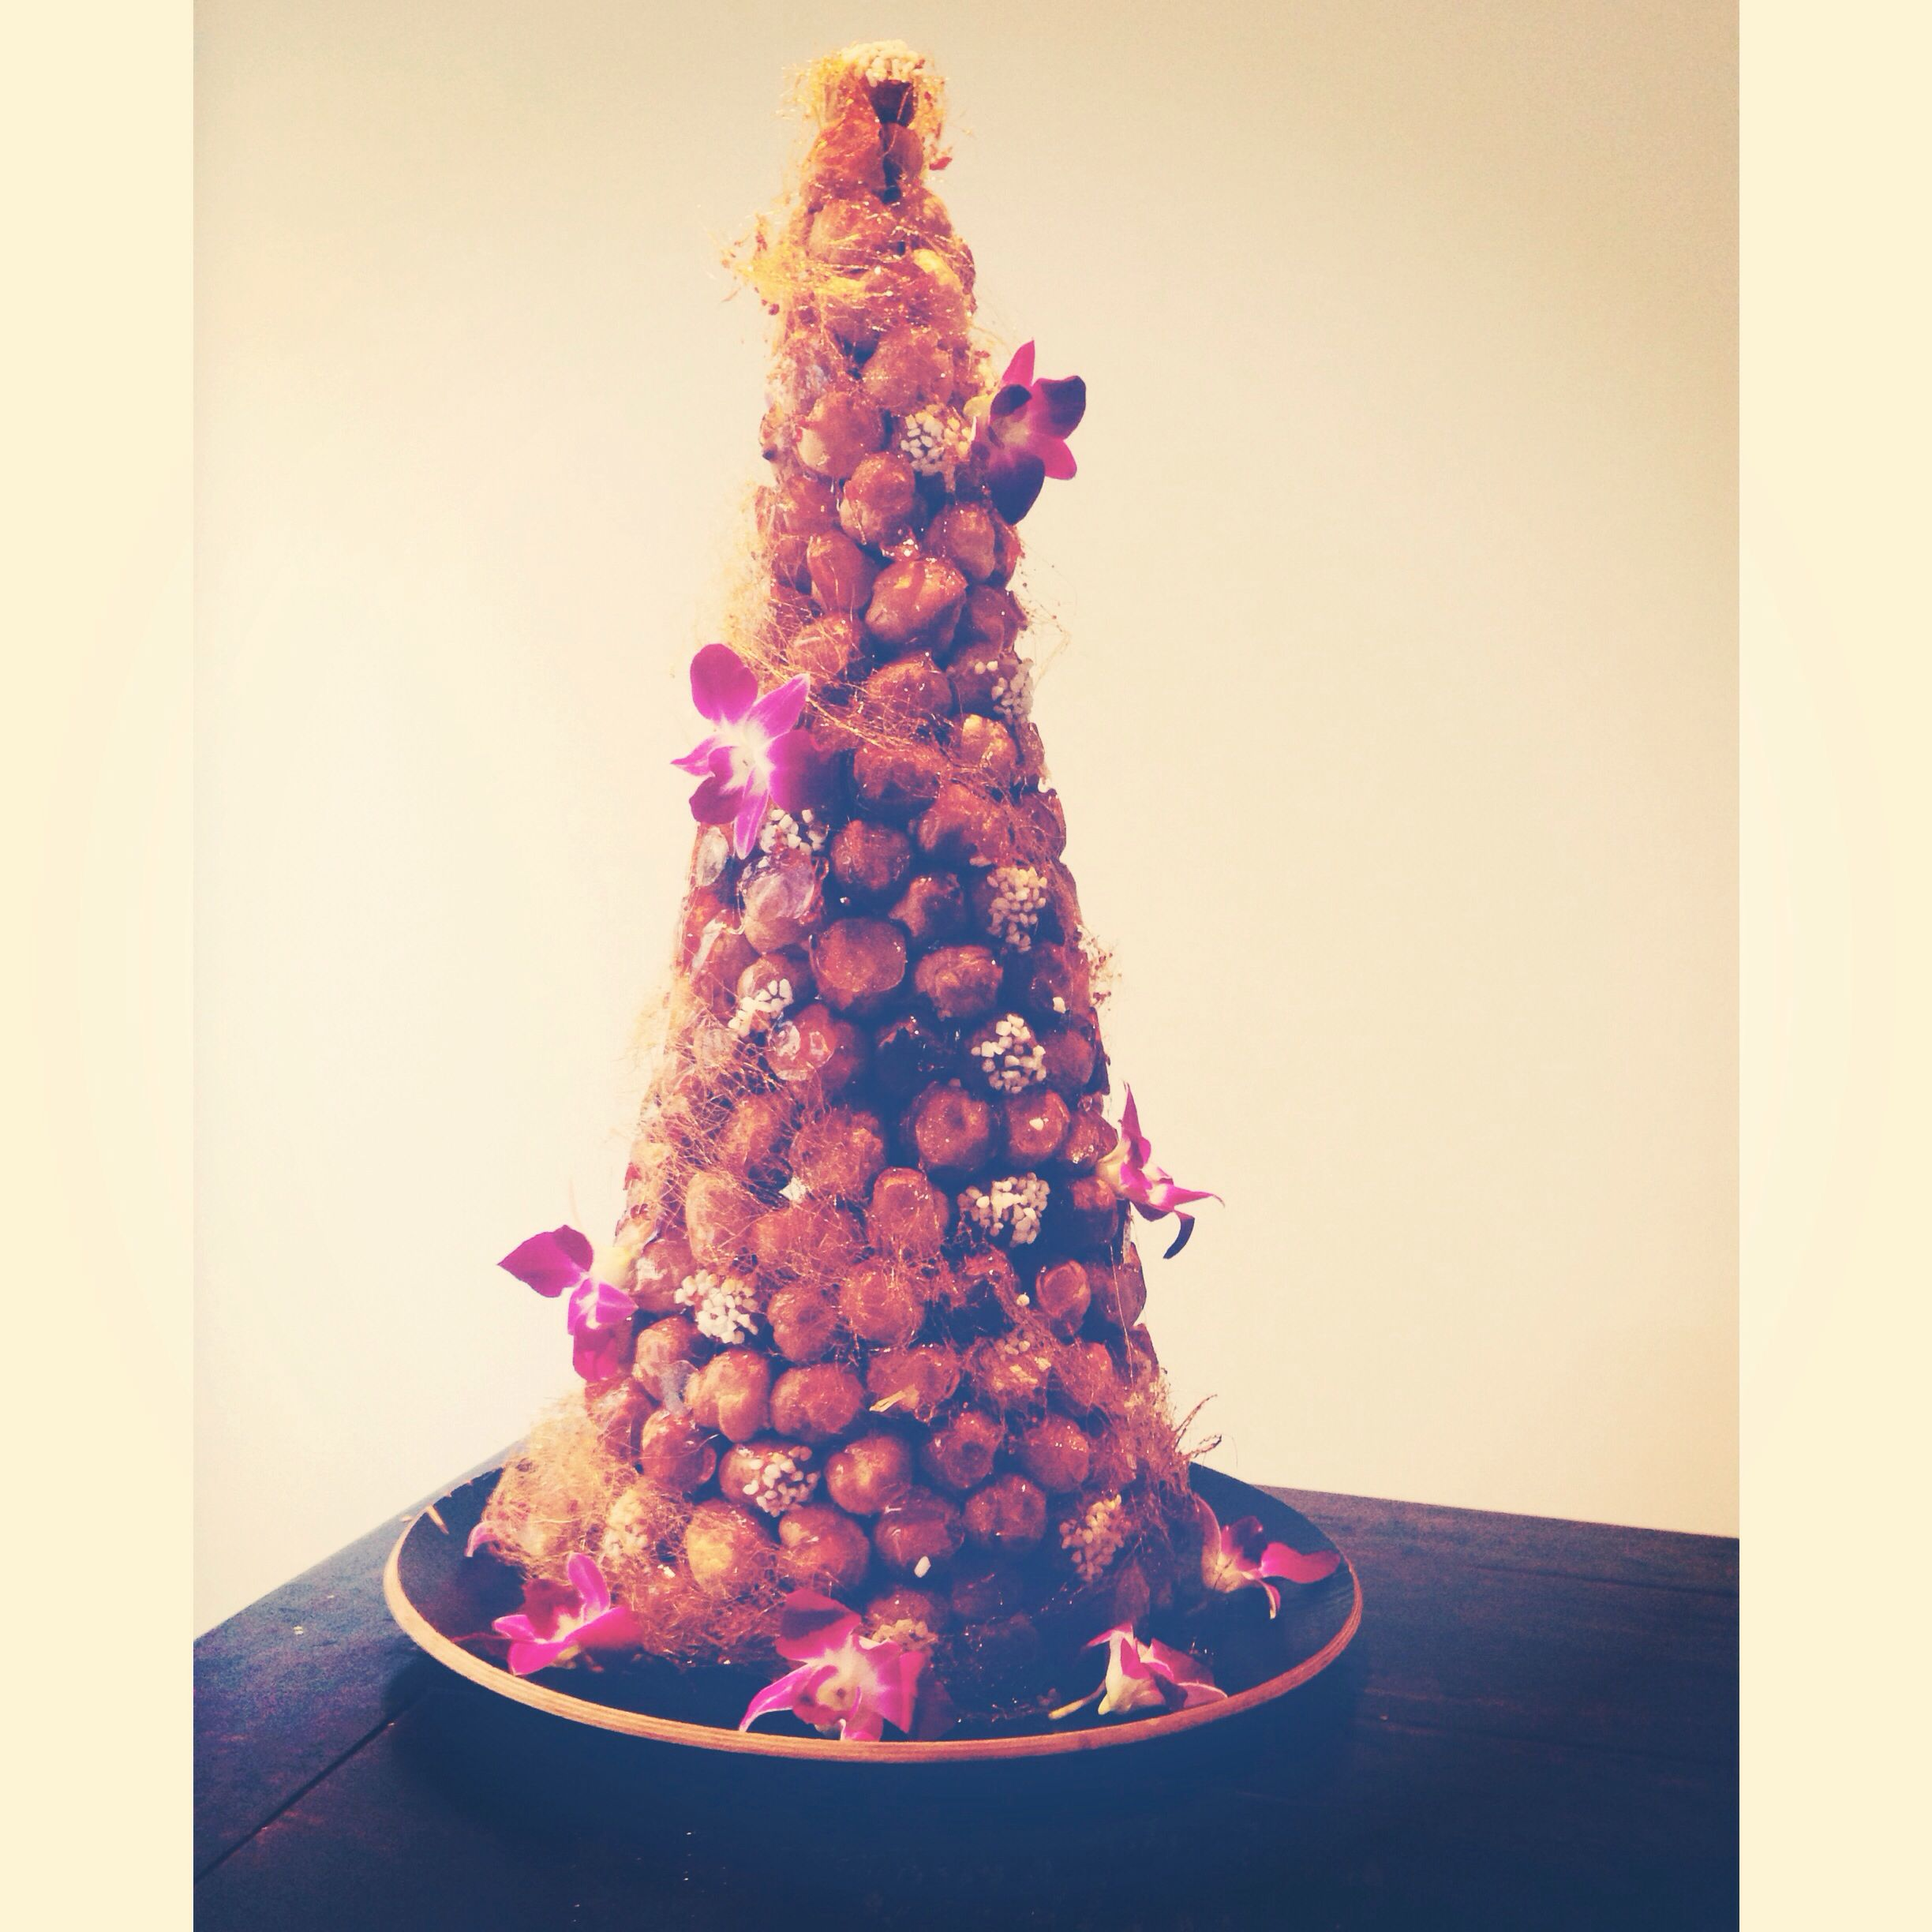 Croquembouche Made Using Adriano Zumbo's Recipe. Puffs Filled With Vanilla Creme Patissiere